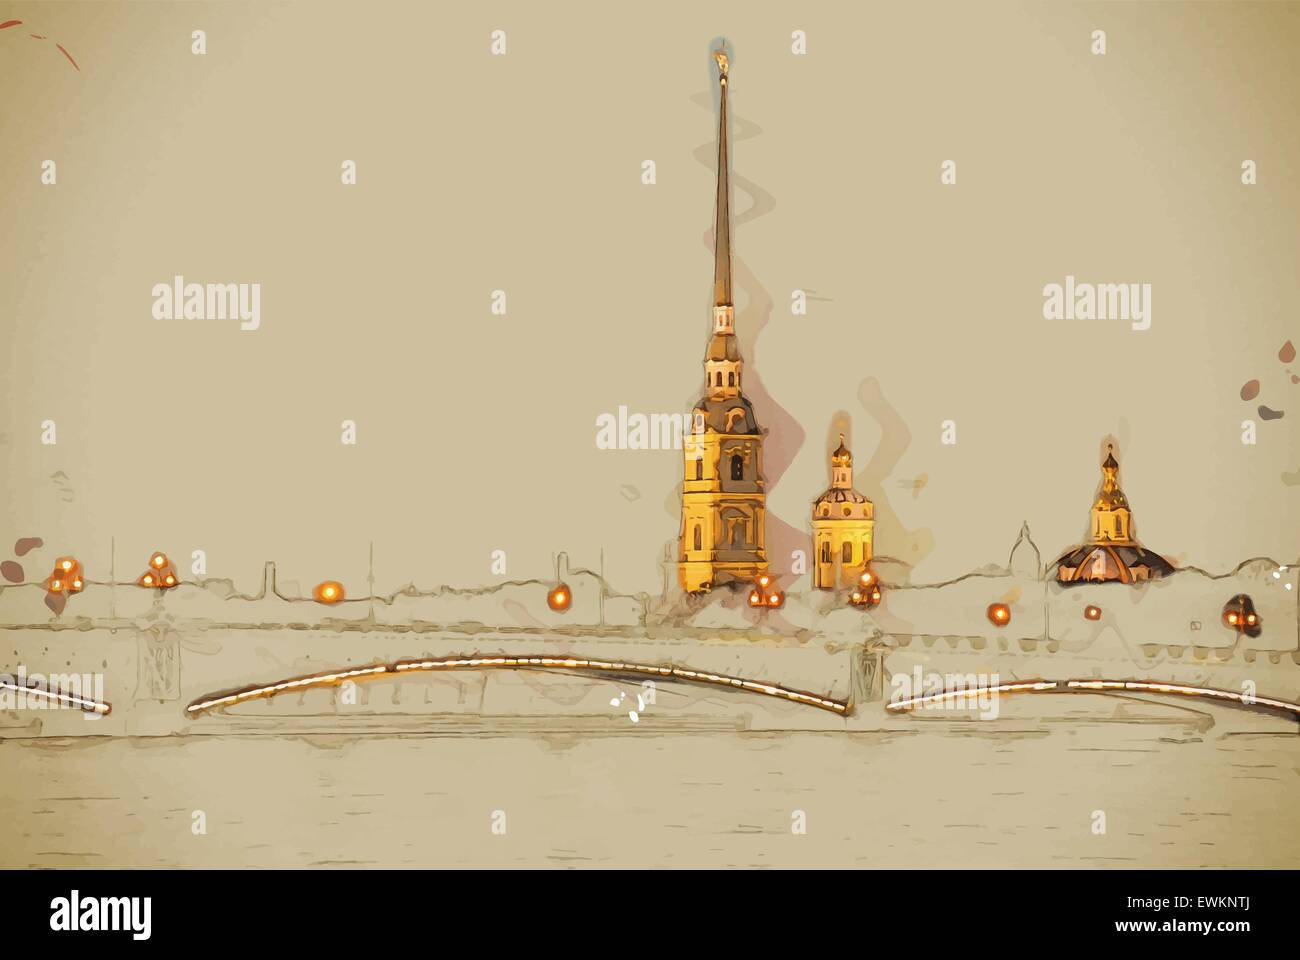 The Peter and Paul Fortress - Stock Vector